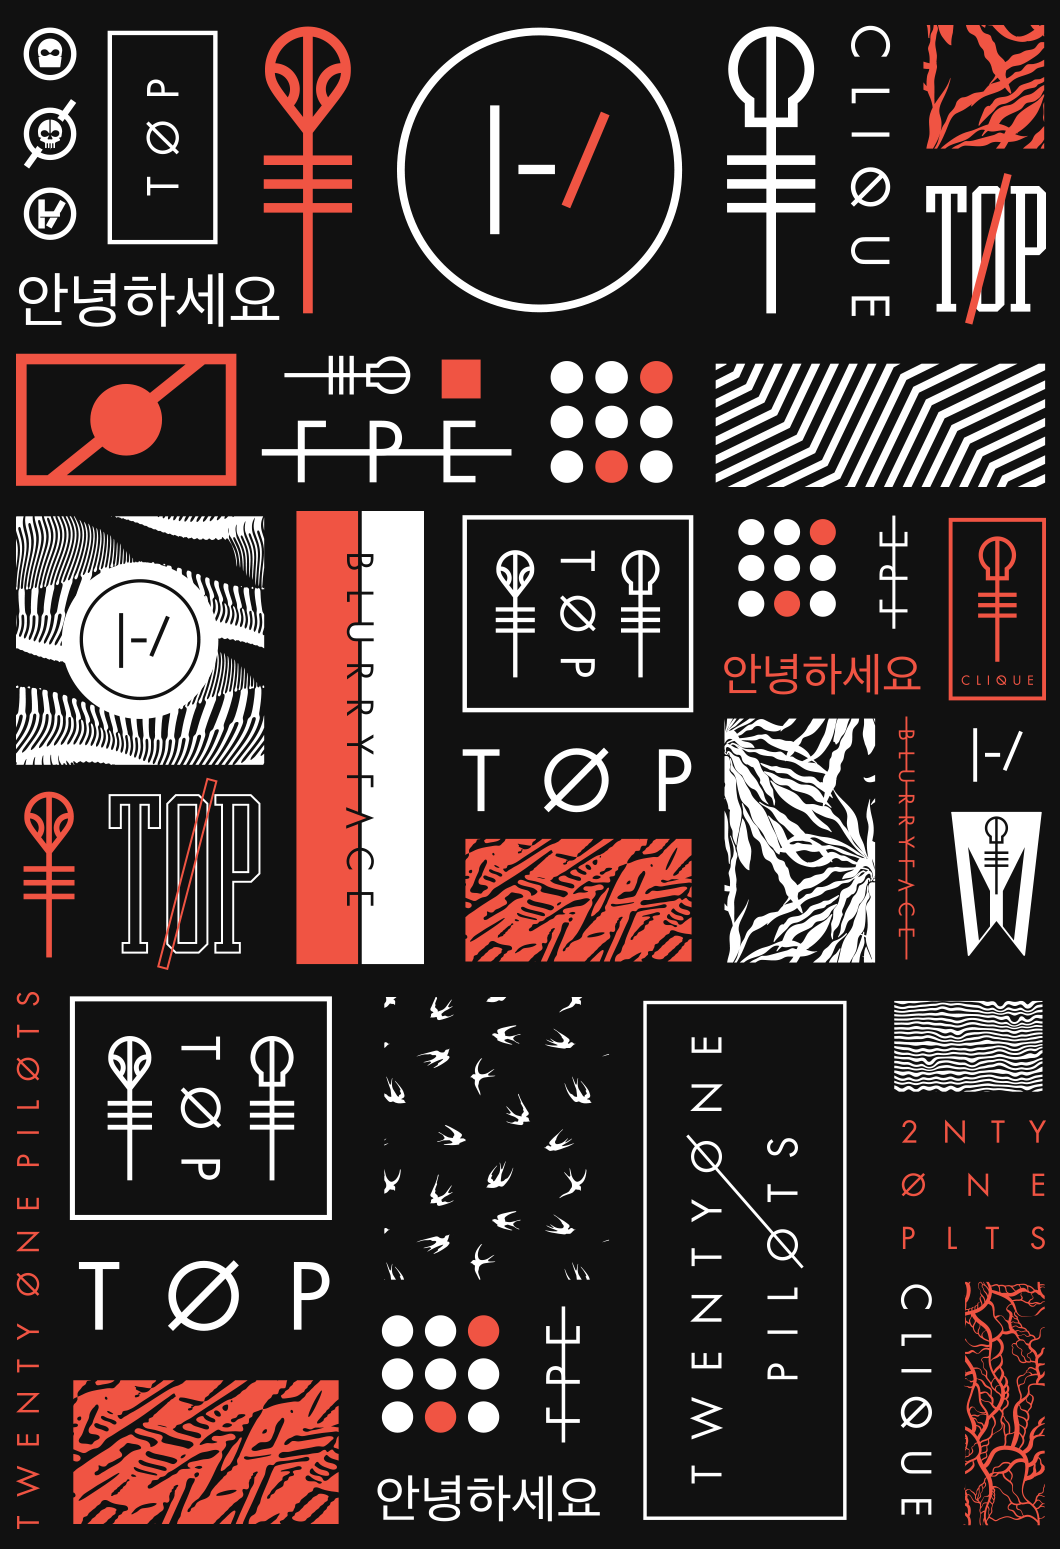 Case Design twenty one pilots phone case : Twenty One Pilots Logo Behind blurryface brandon rike